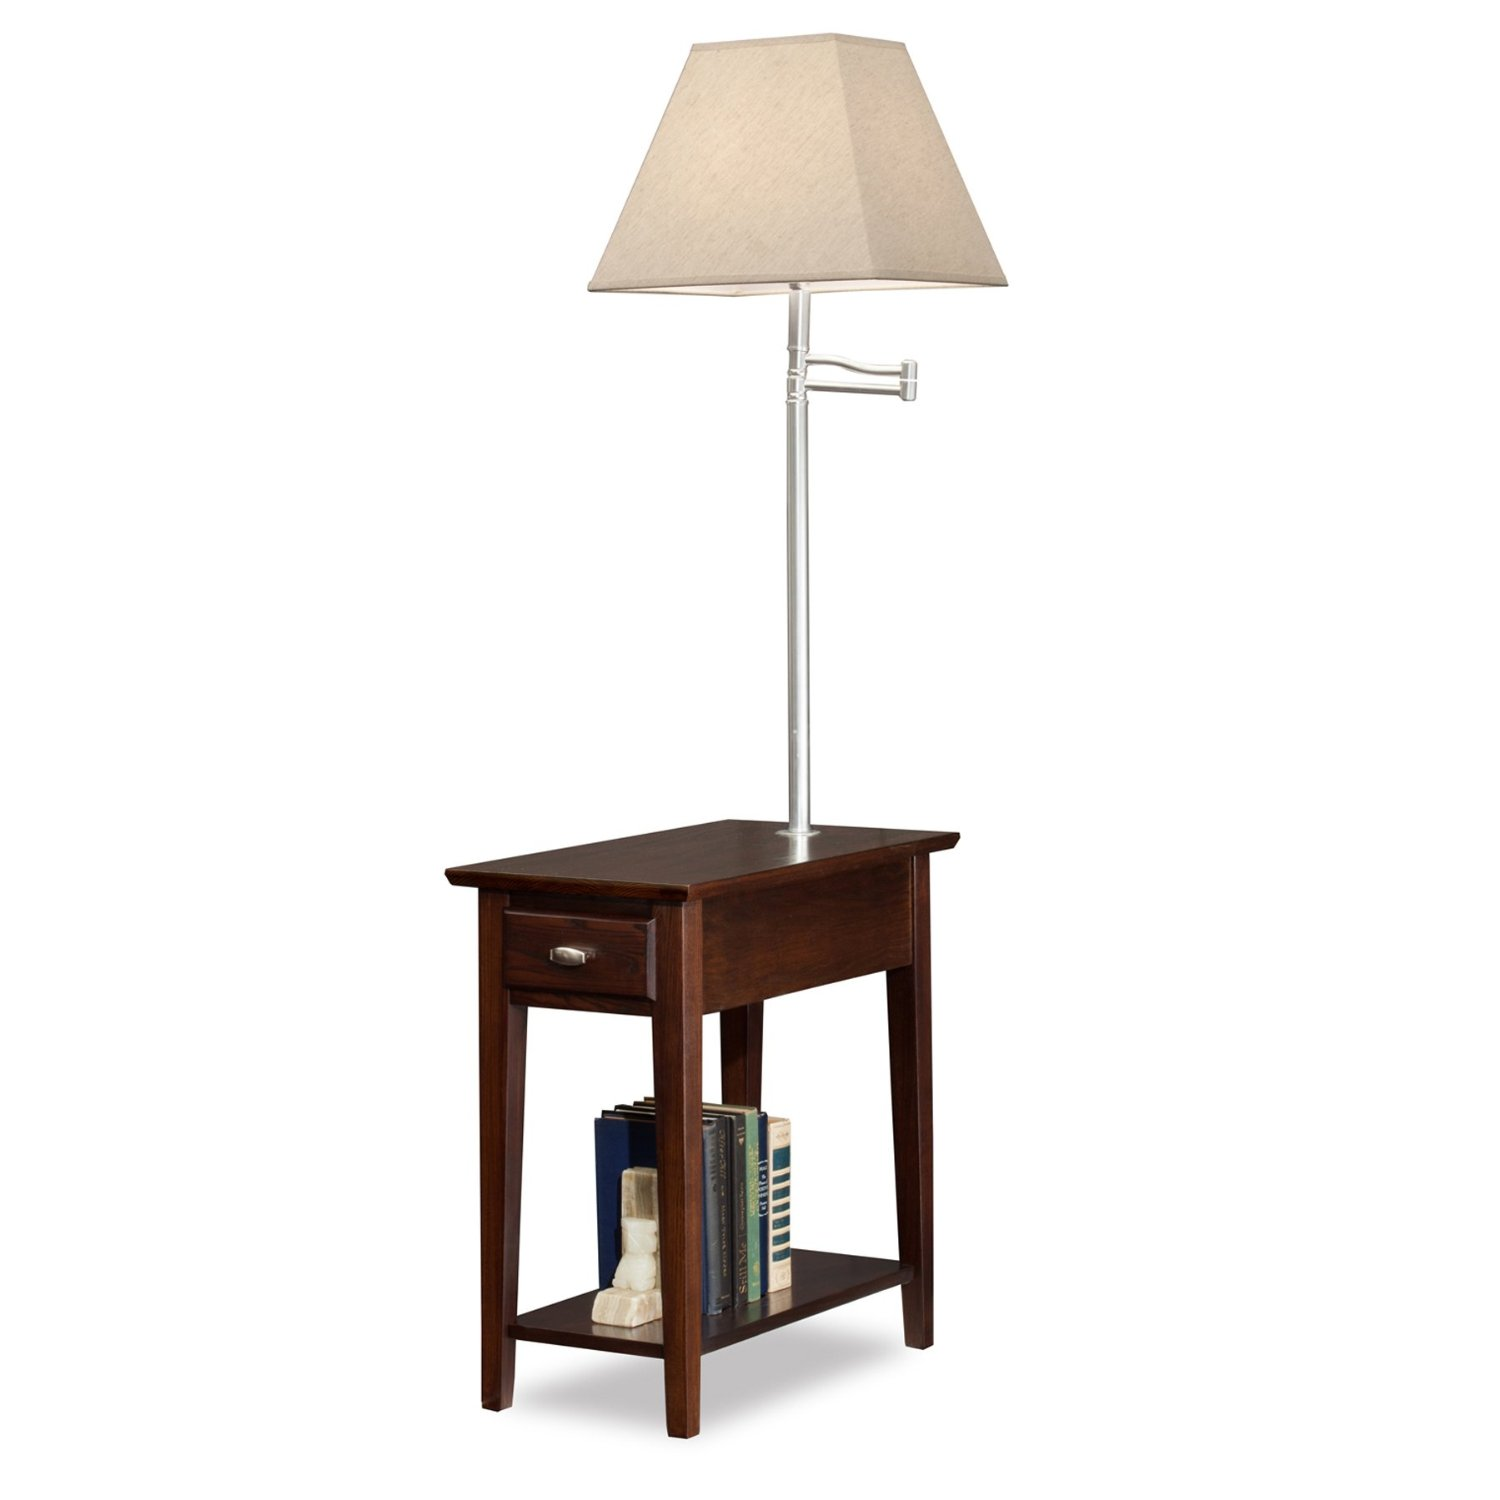 floor lamp with table attached photo - 2